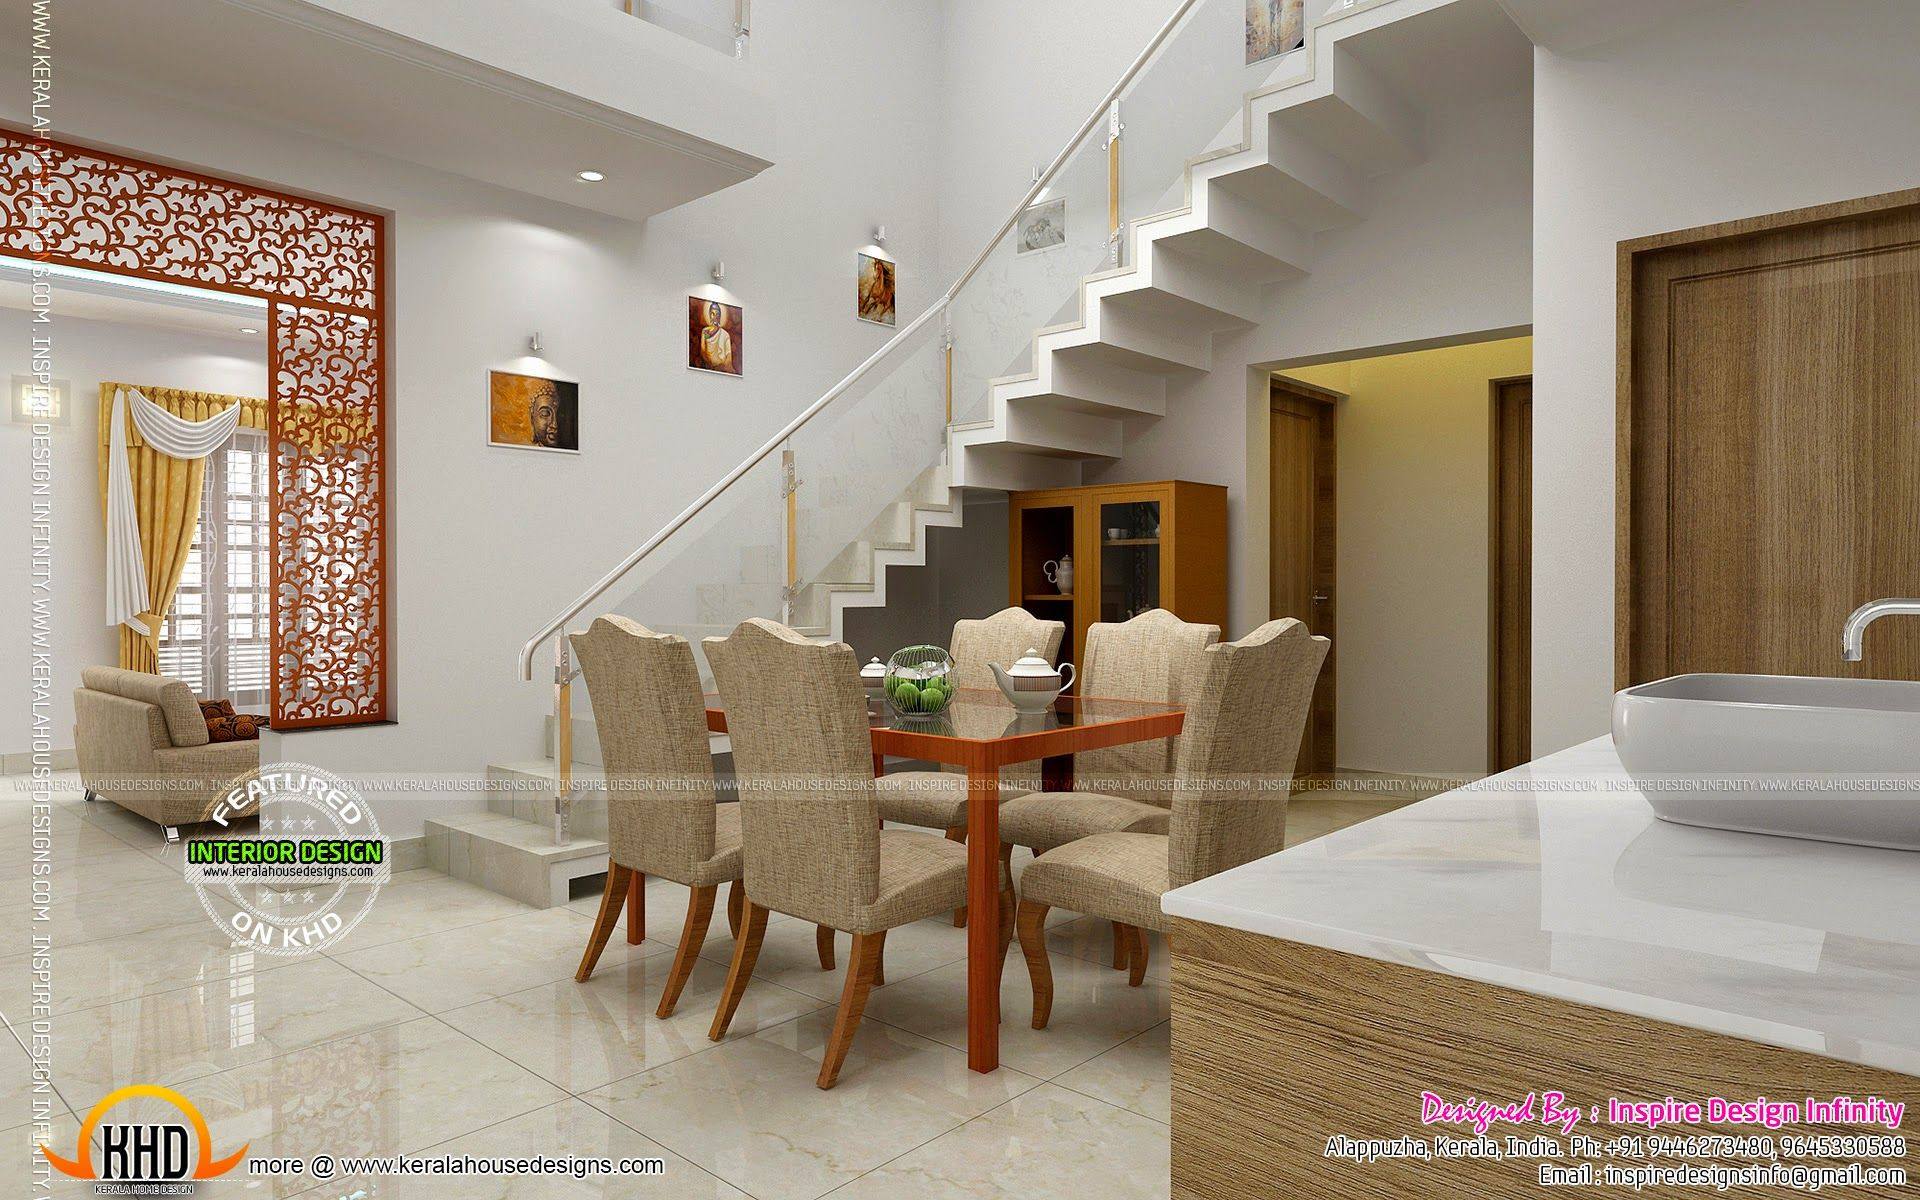 Dining room designs beautiful homes interiors house for Kerala homes interior designs